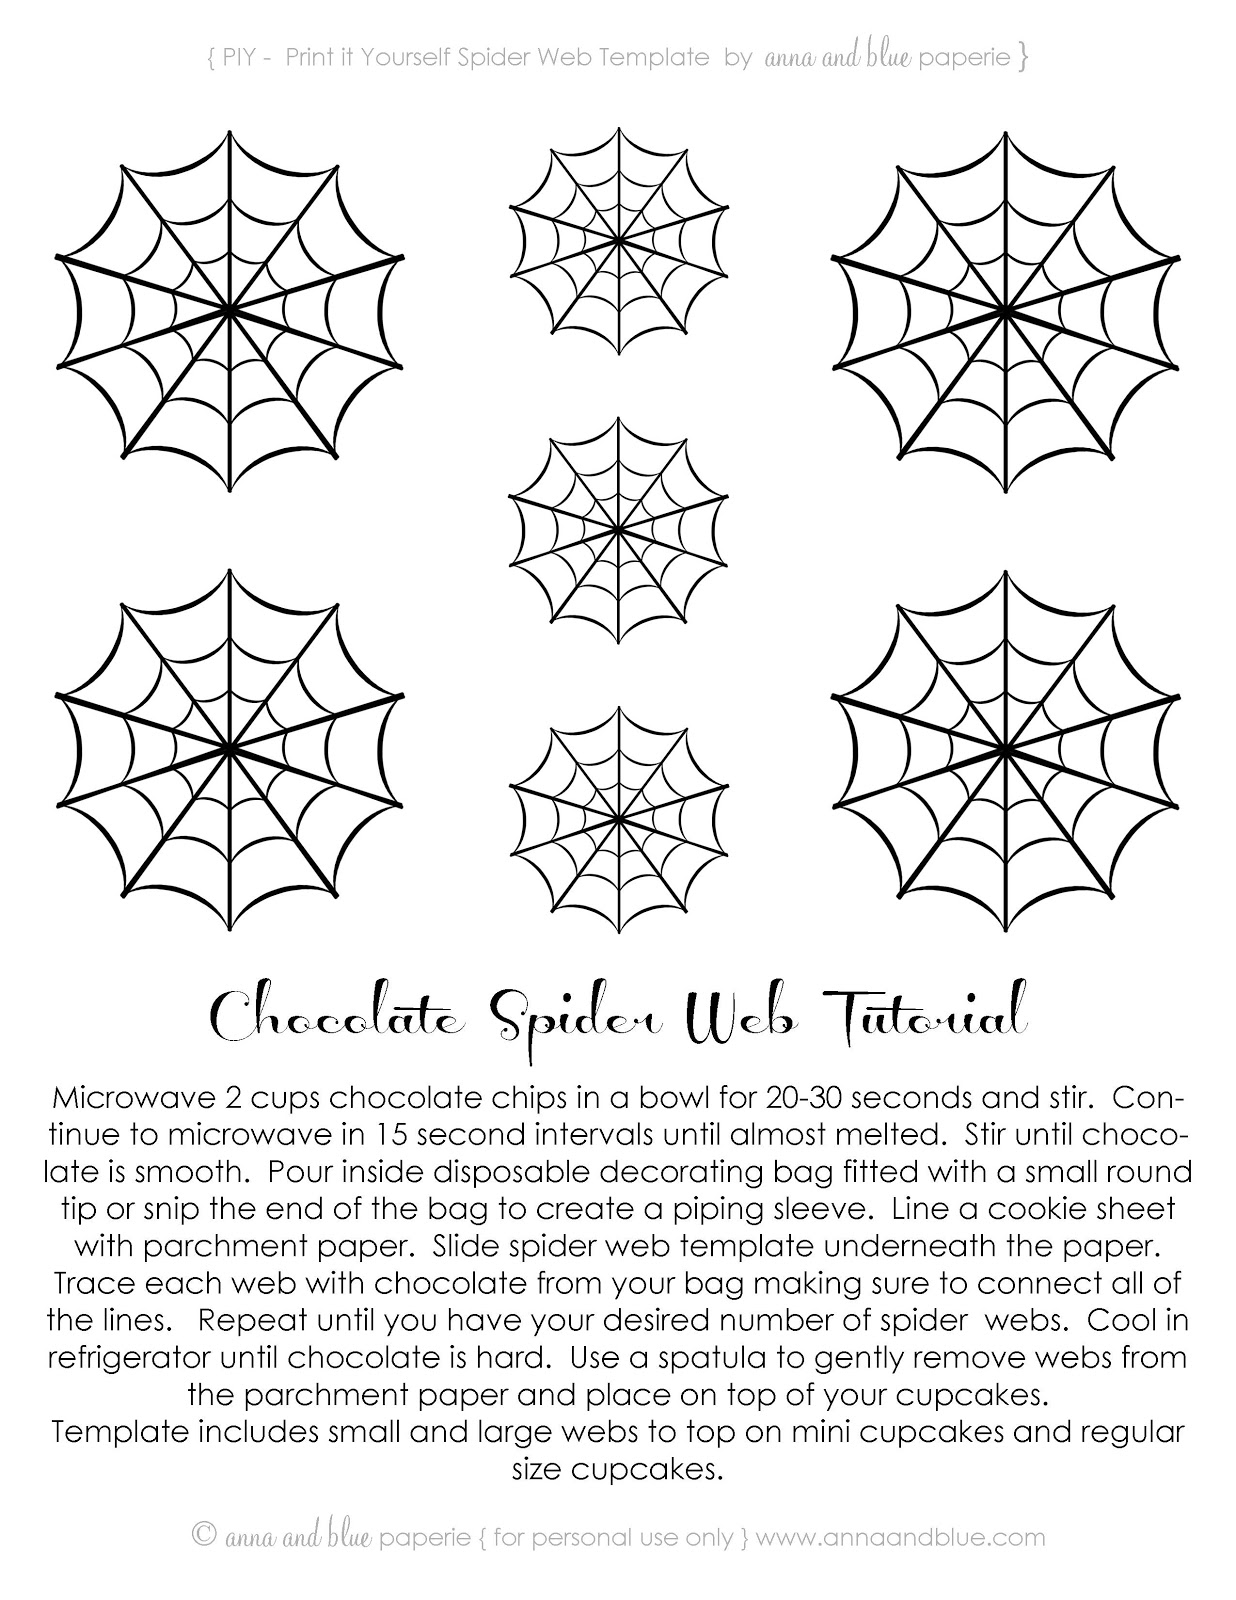 The Best Spider Web Template Printable Mendoza Website